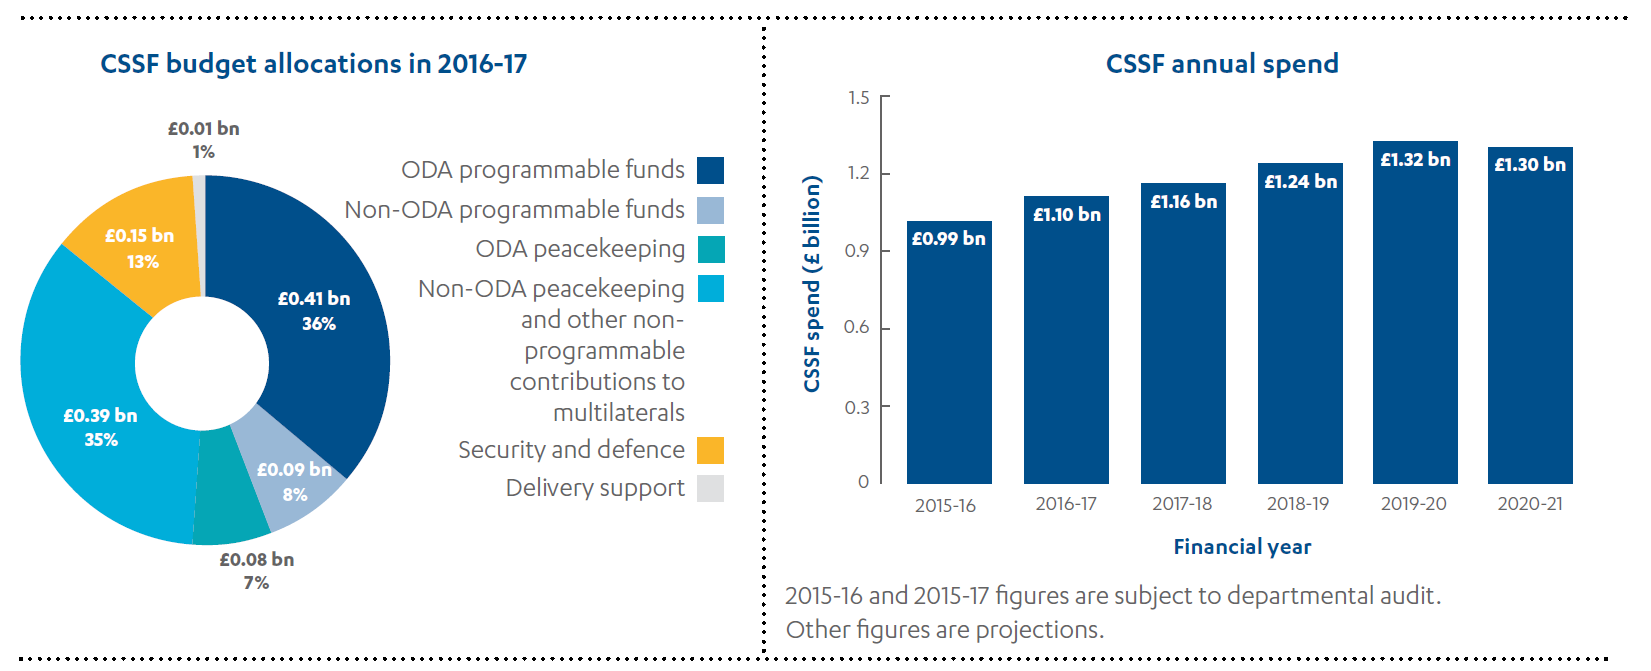 Pie chart showing CSSF budget allocations in 2016-17 and bar chart showing CSSG annual spend.